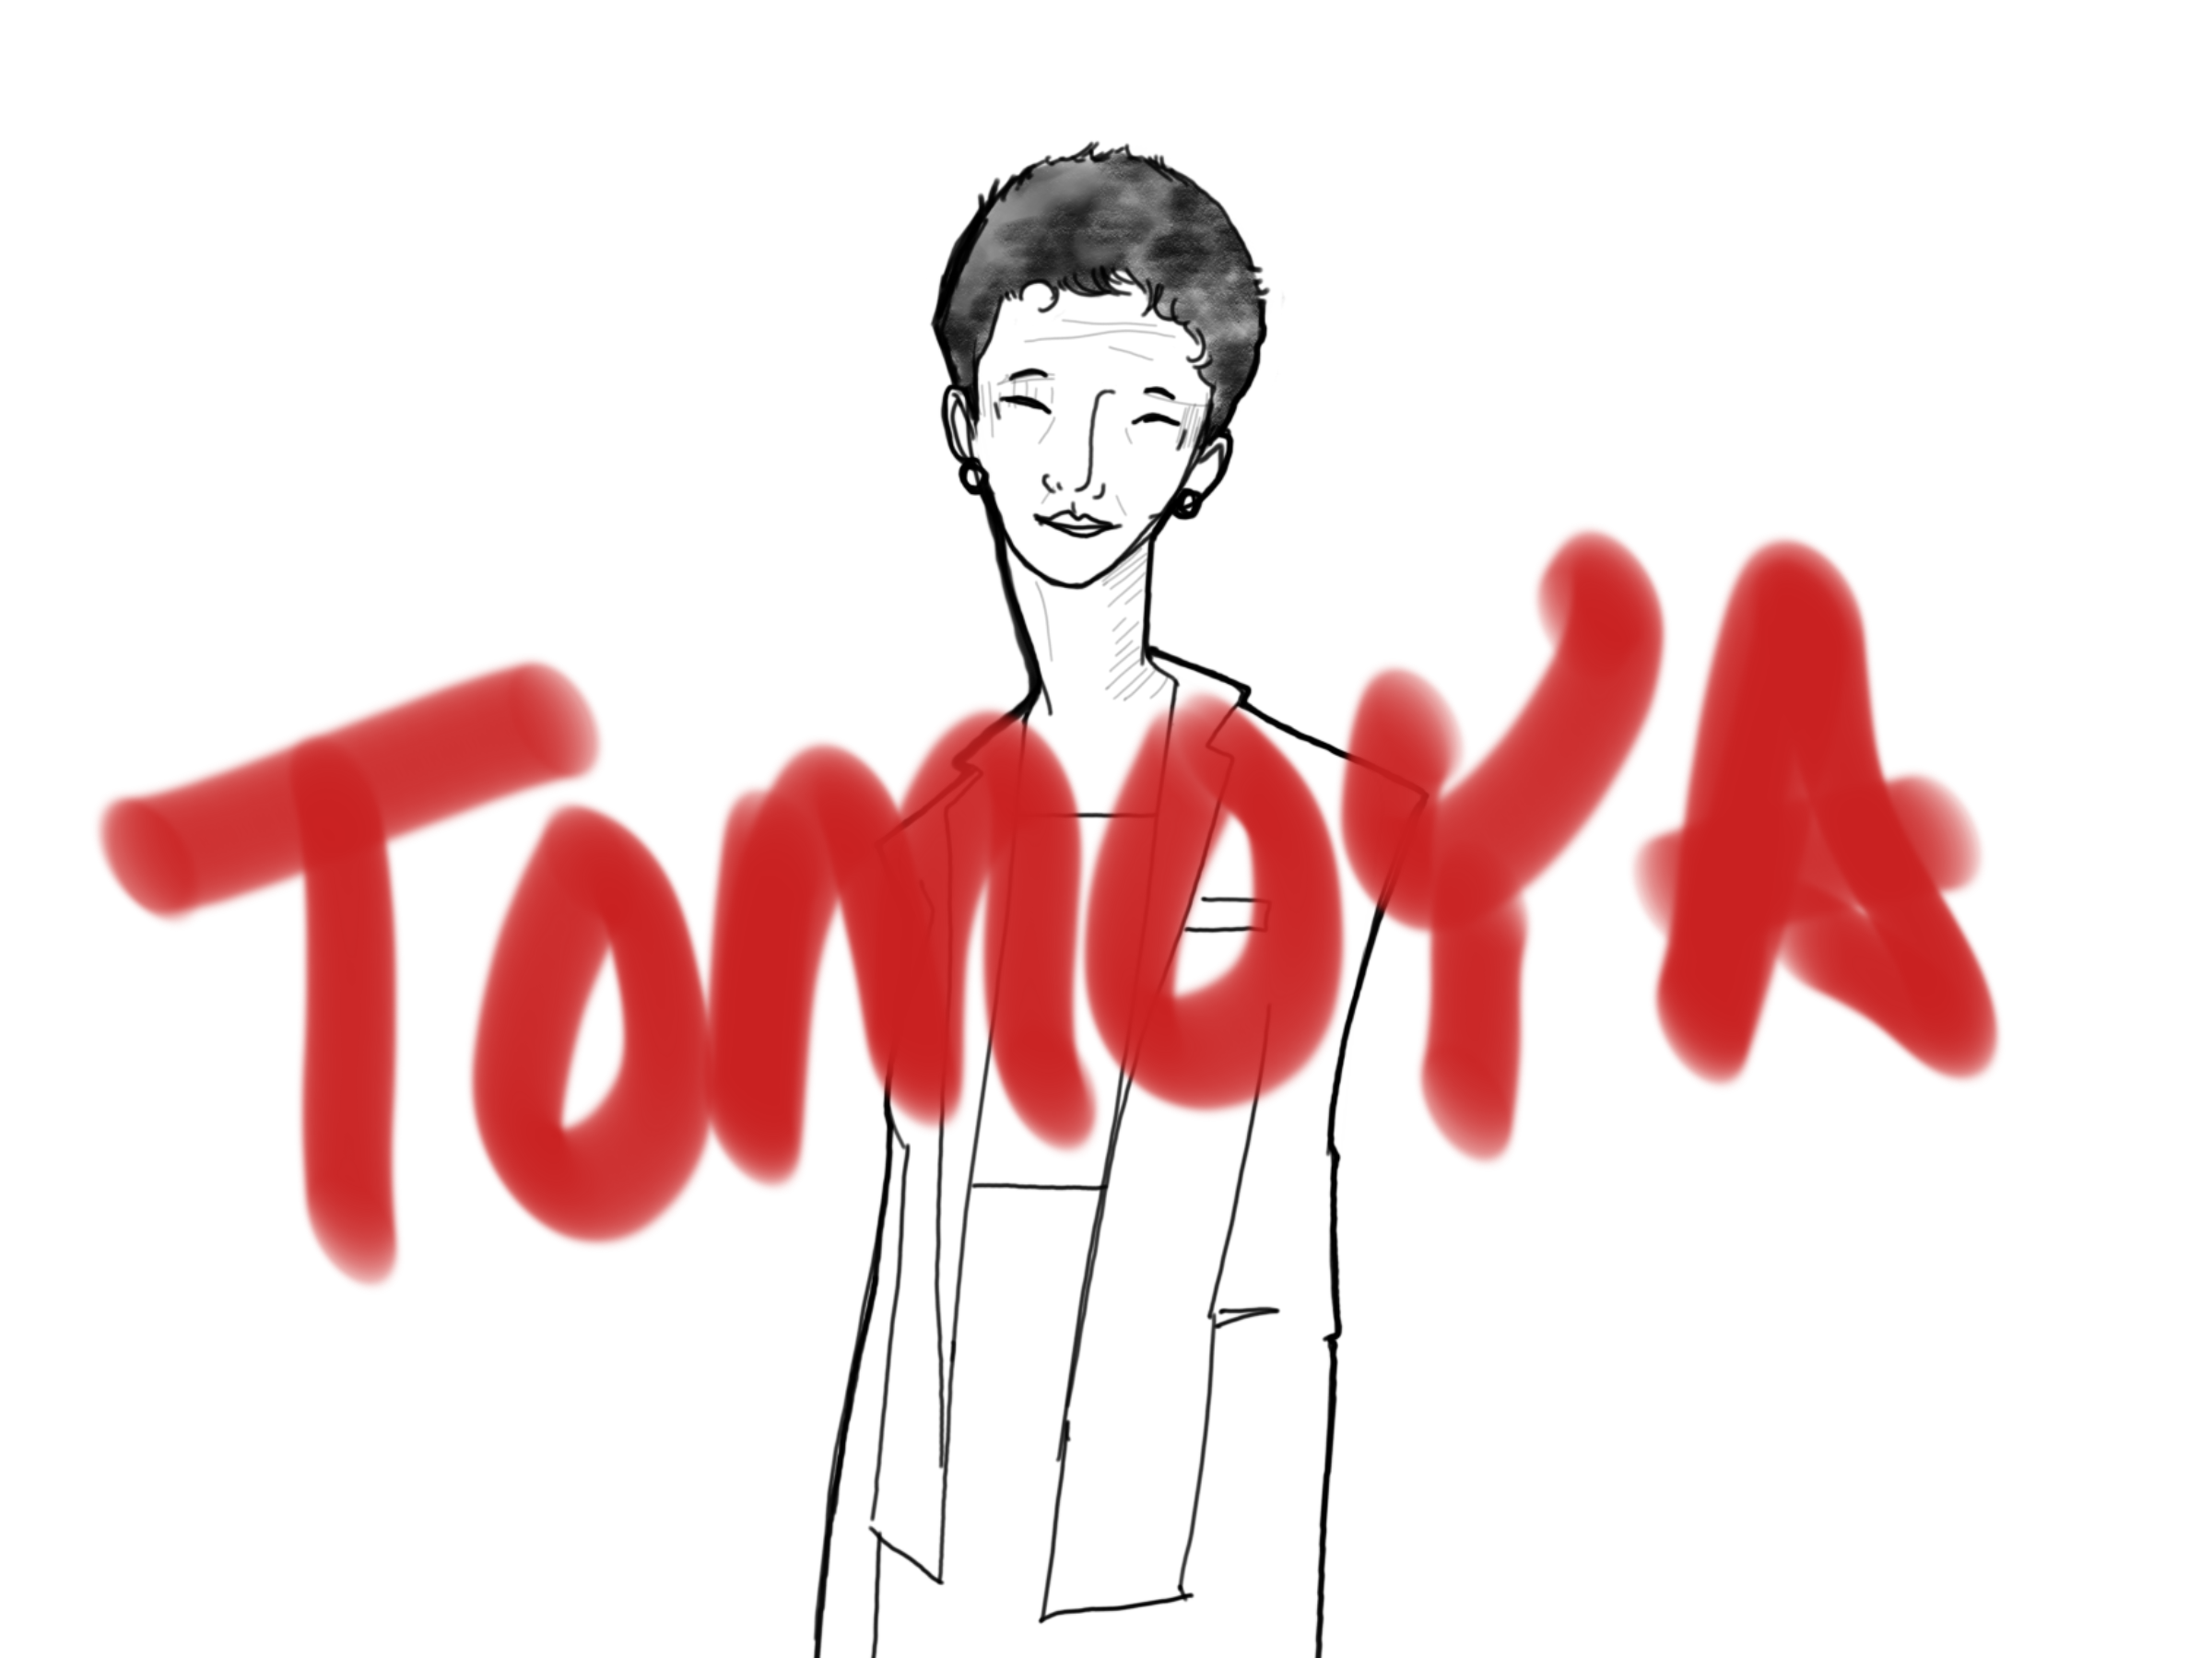 Tomoya is the name that connects across my mother and my Obachan.